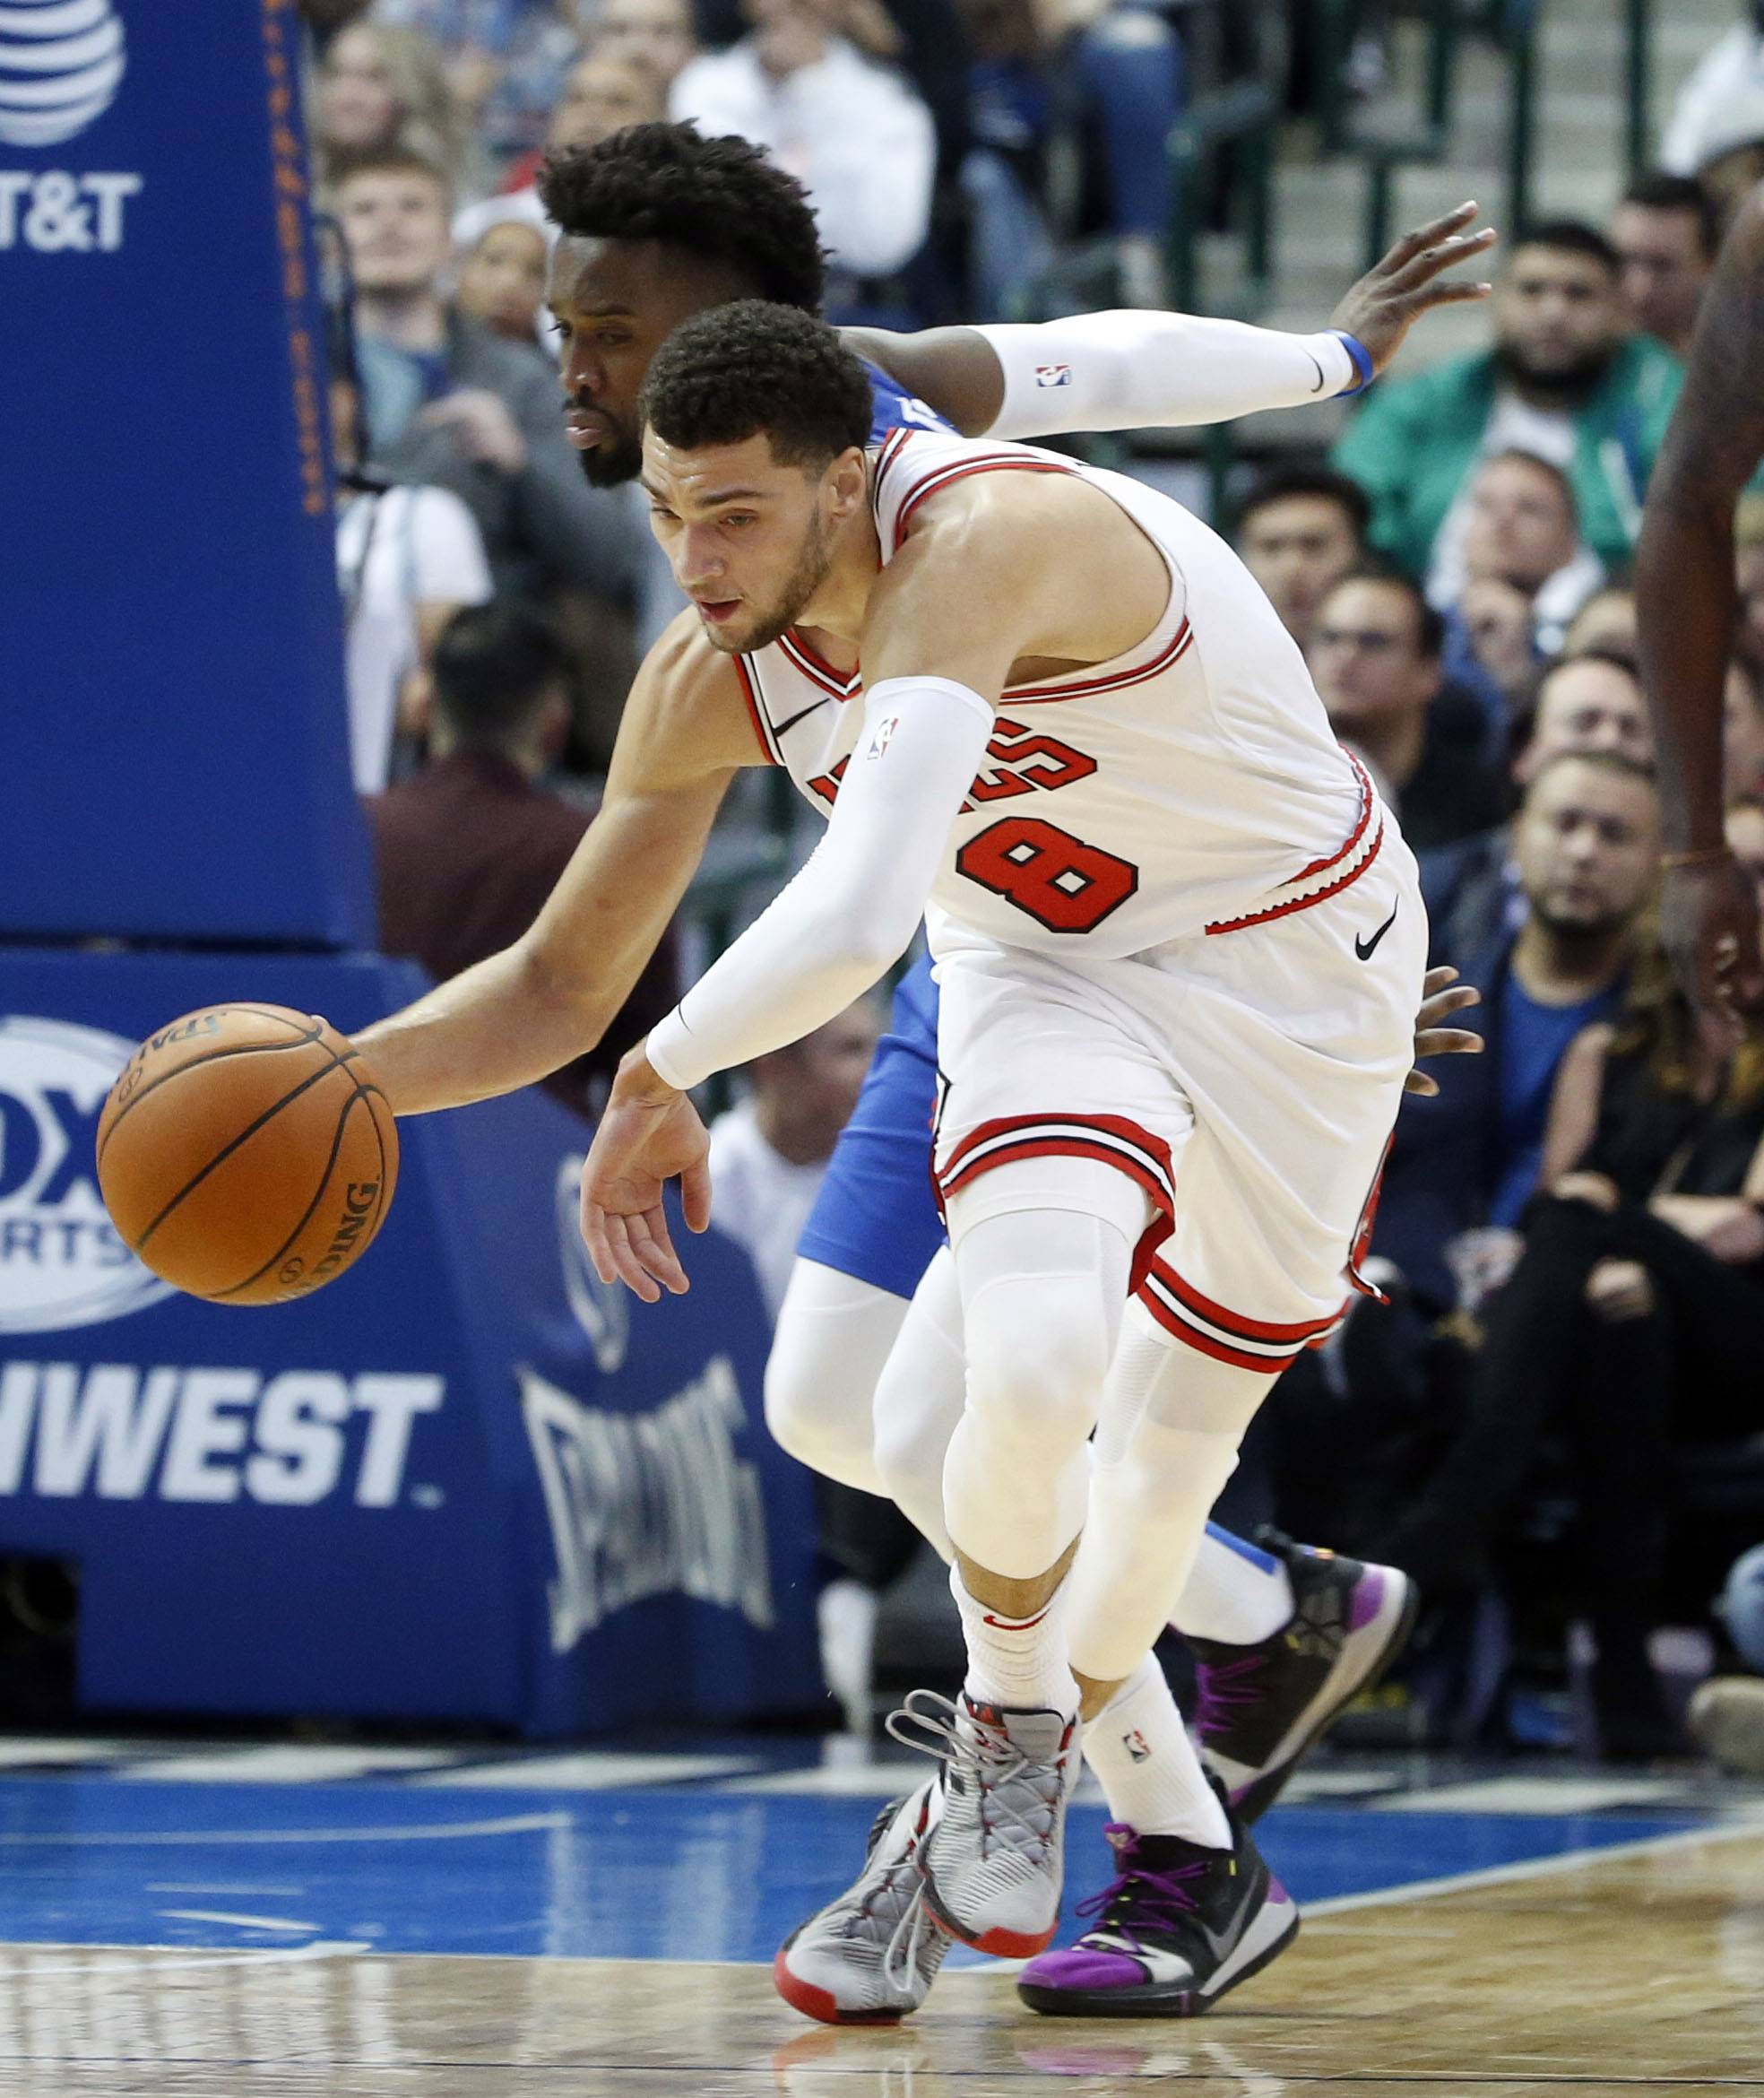 Chicago Bulls guard Zach LaVine (8) dribbles the ball past Dallas Mavericks guard Wesley Matthews during the first half of an NBA basketball game in Dallas, Monday, Oct. 22, 2018. (AP Photo/Michael Ainsworth)